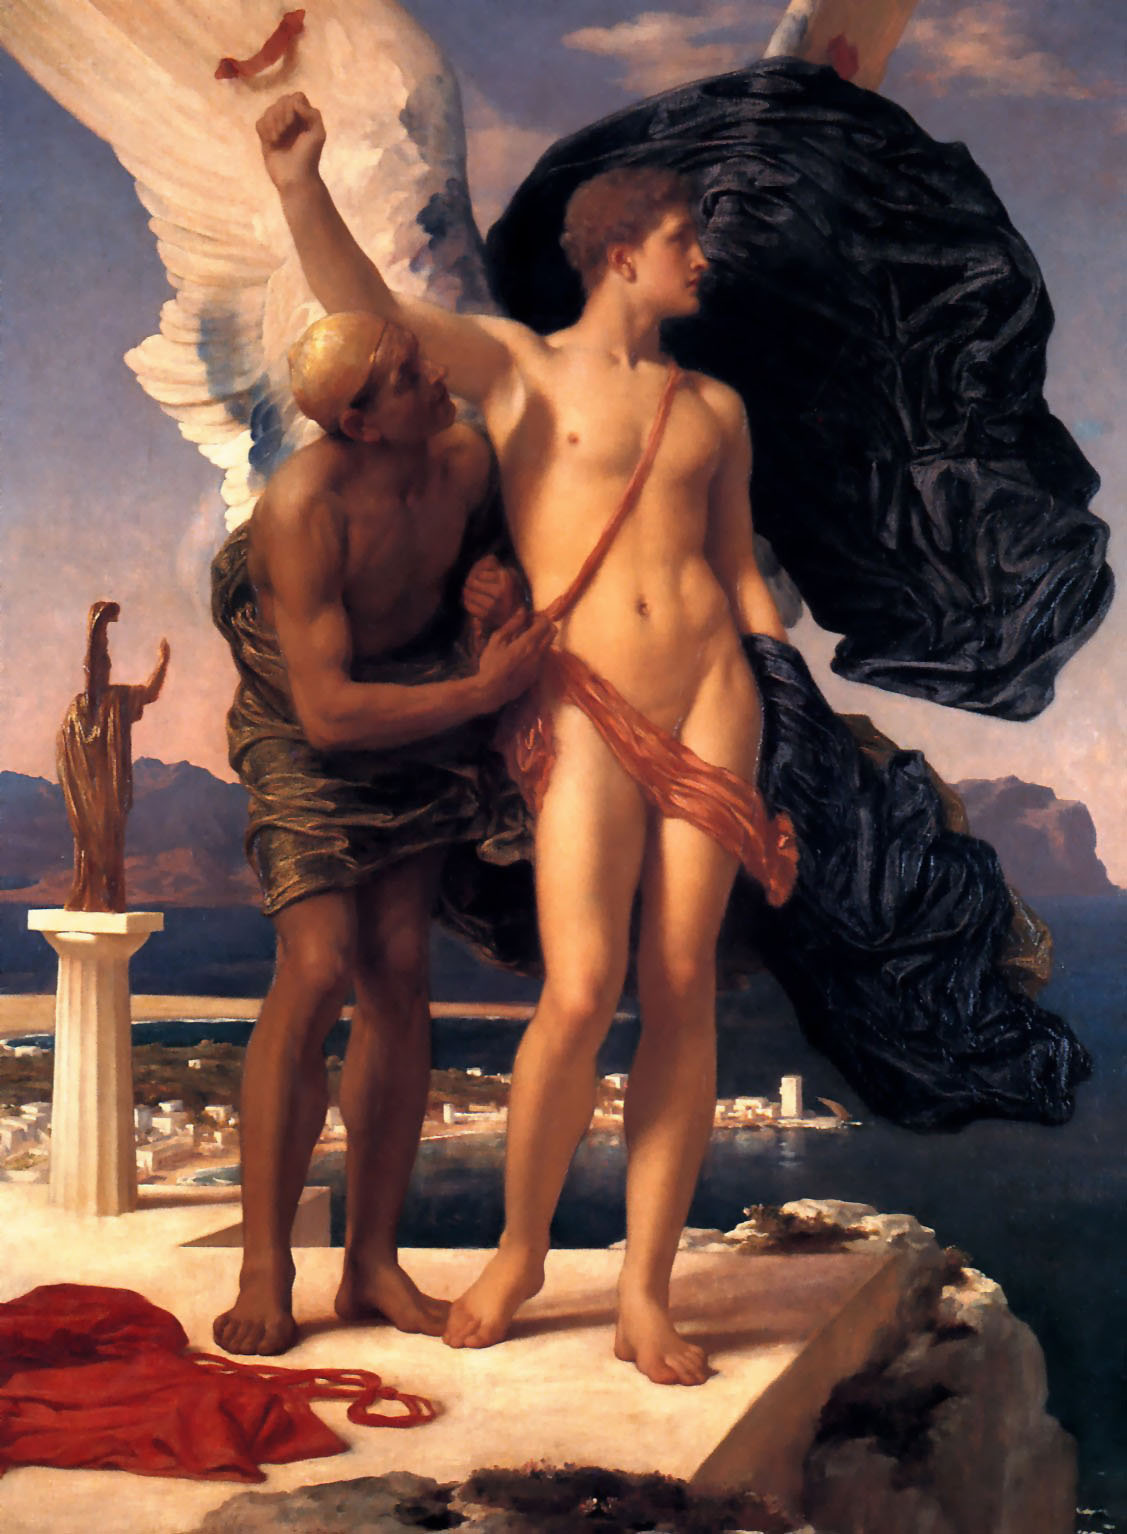 Icarus and Daedalus, Lord Frederic Leighton (oil on canvas, England, c. 1869)